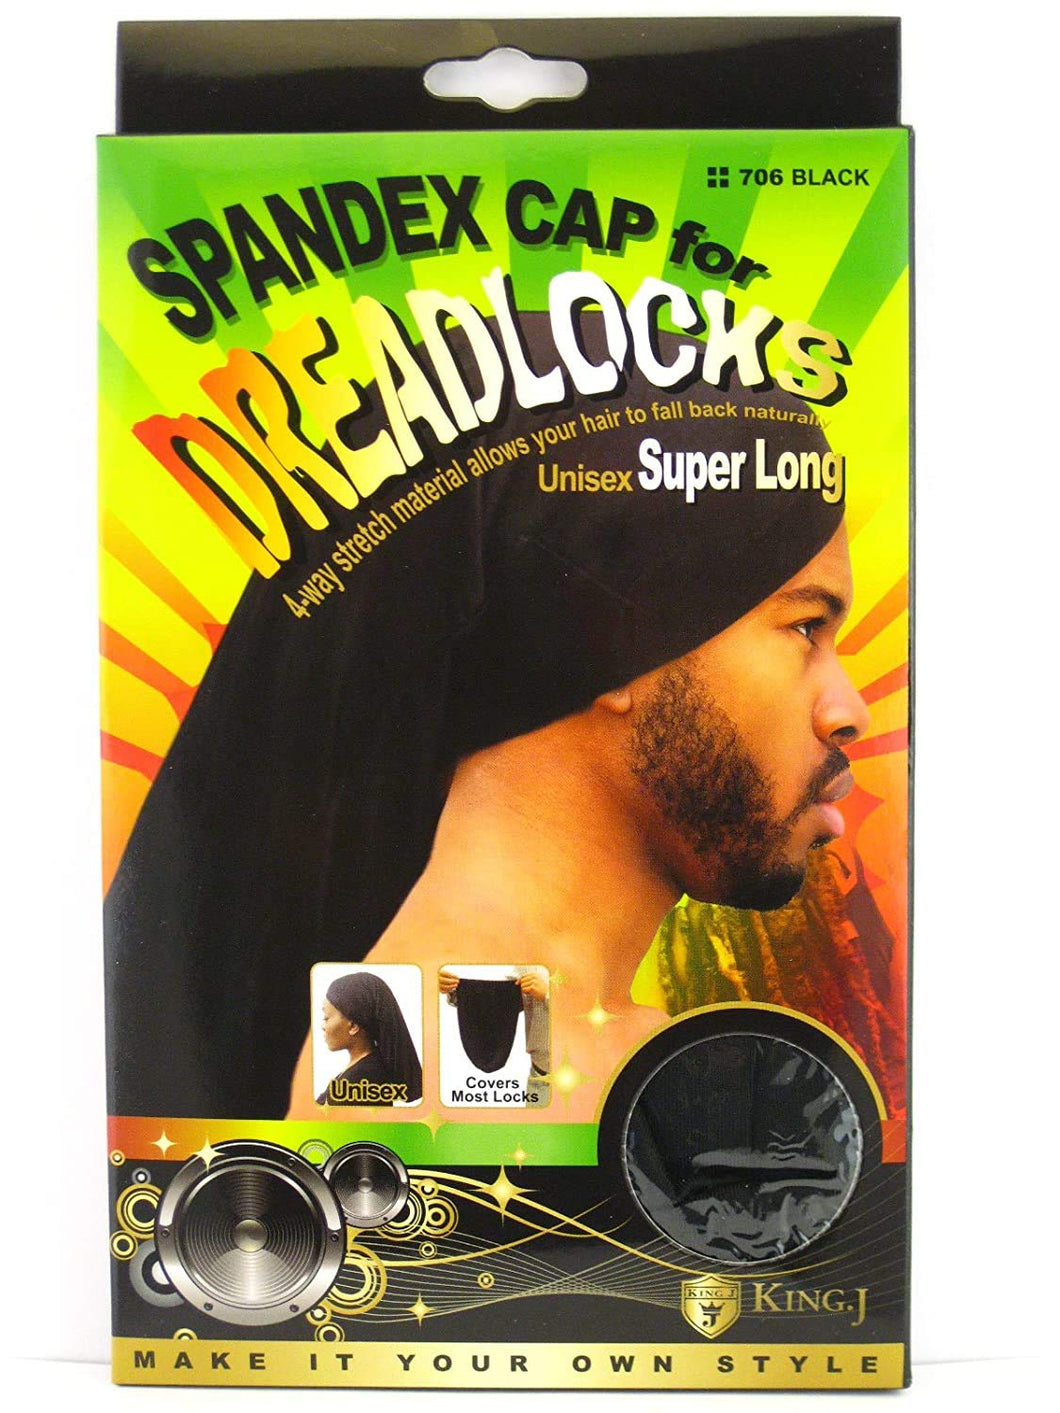 Spandex Cap for Dreadlocks (unisex Super Long)